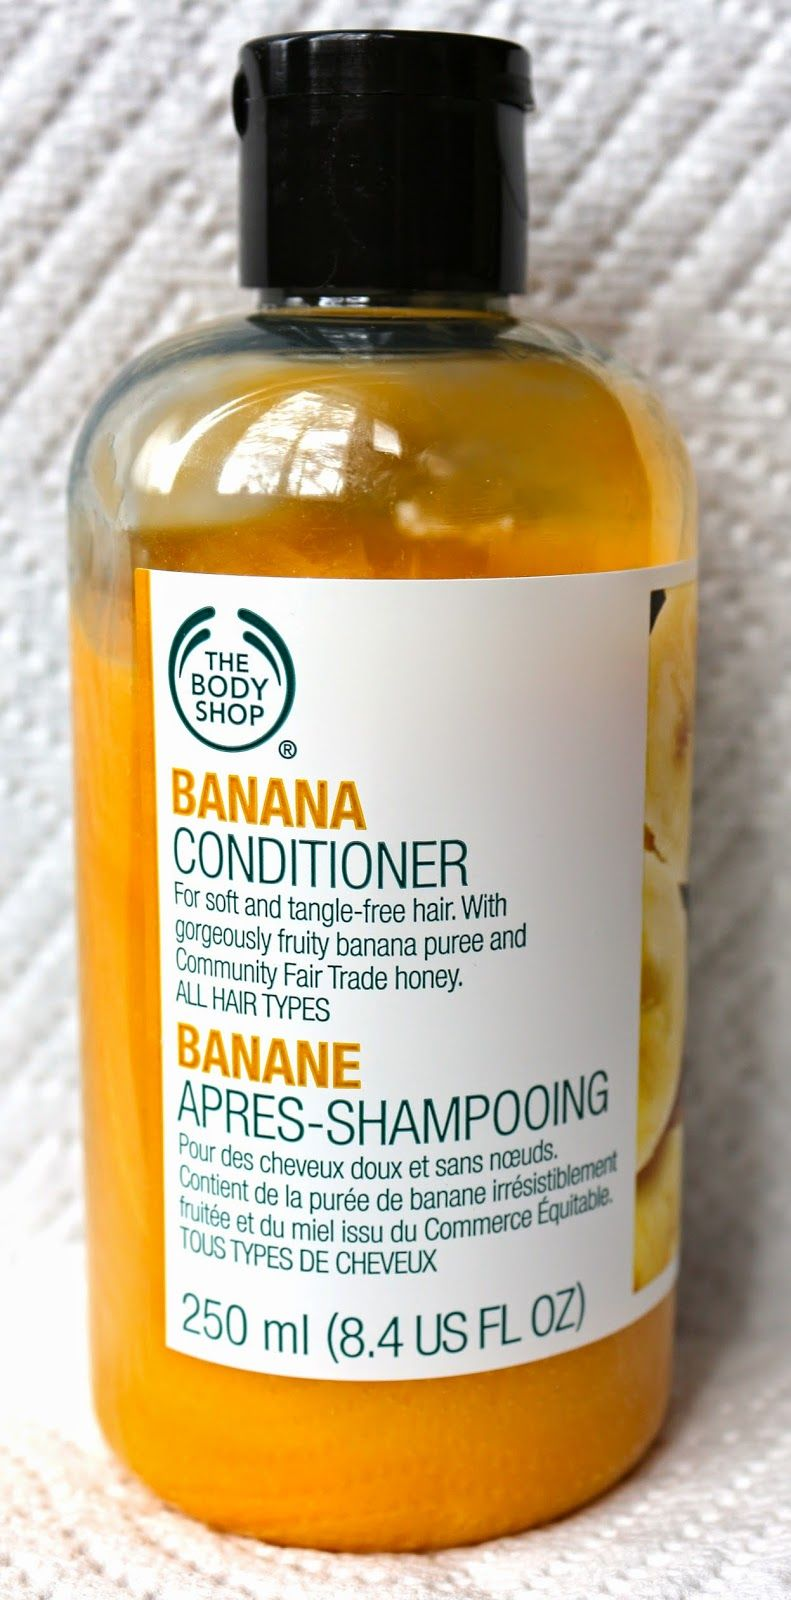 Beauty Apocalypse:  Do bananas make good hair conditioner?  Read this to find out!